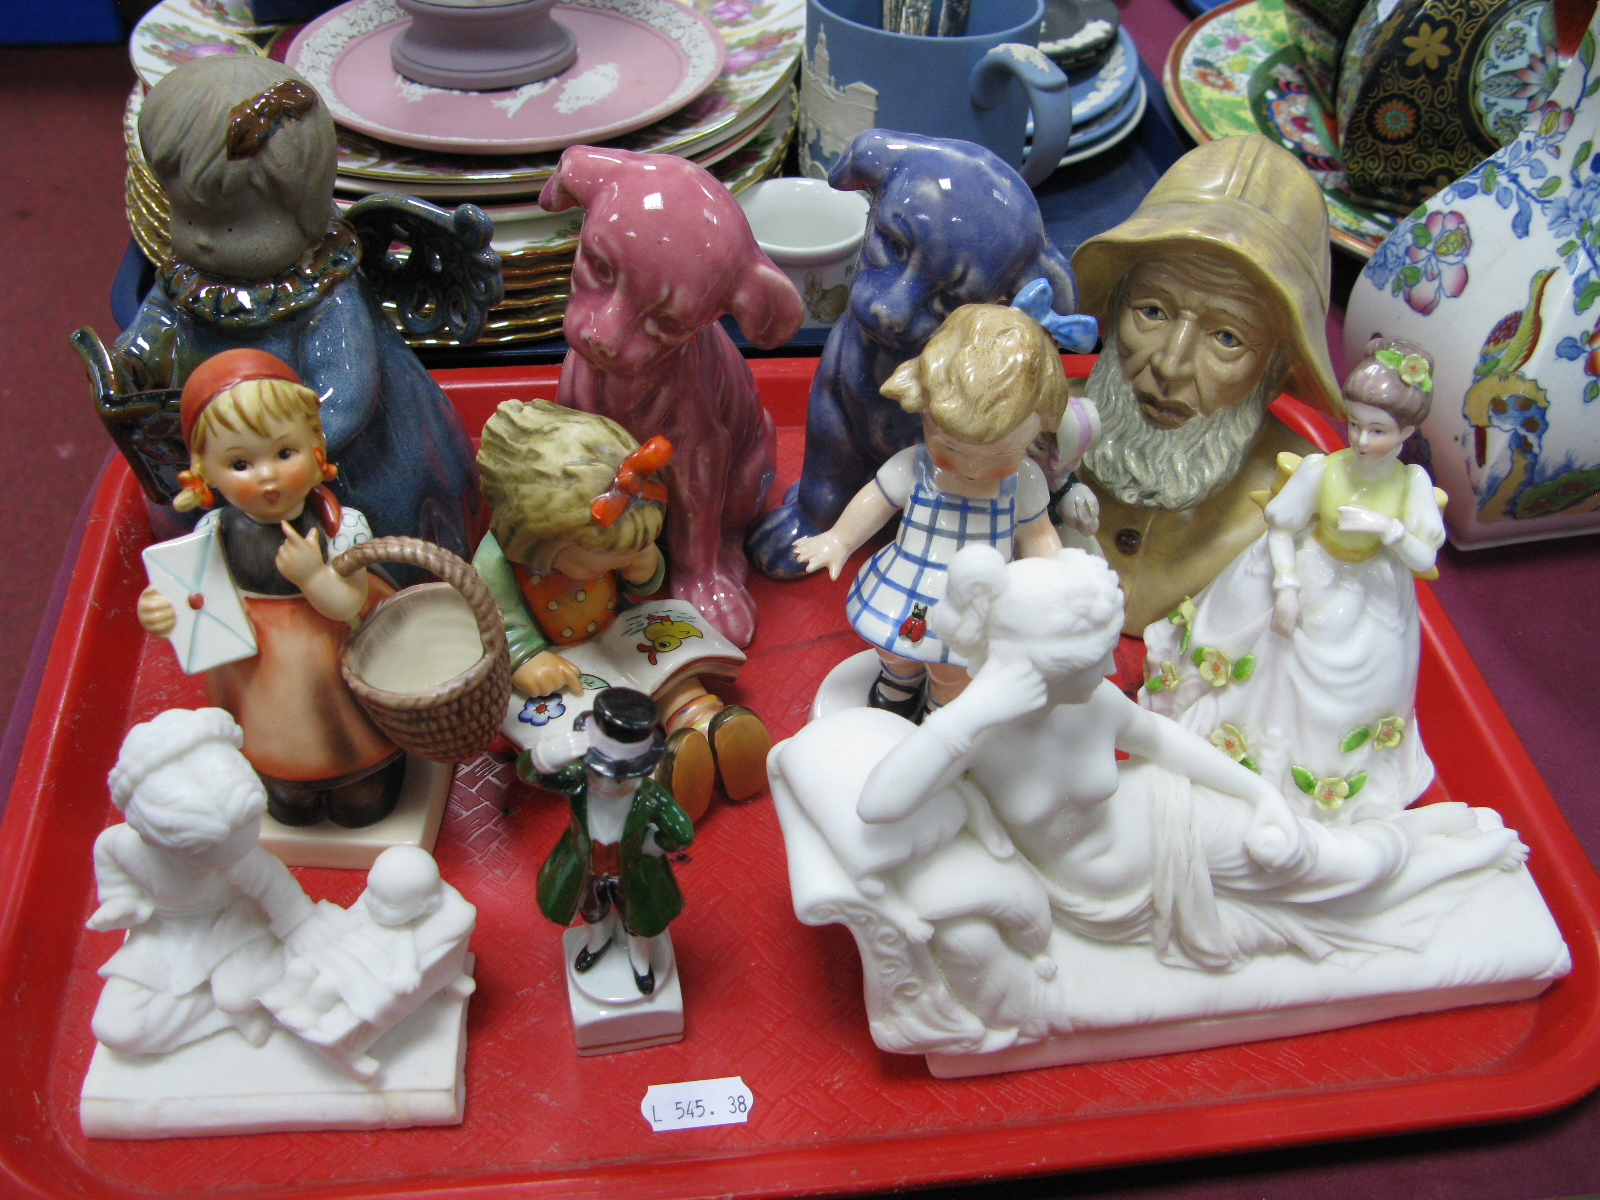 Lot 1035 - Three Hummell Figures, Atlantic mould bust, other figurines:- One Tray